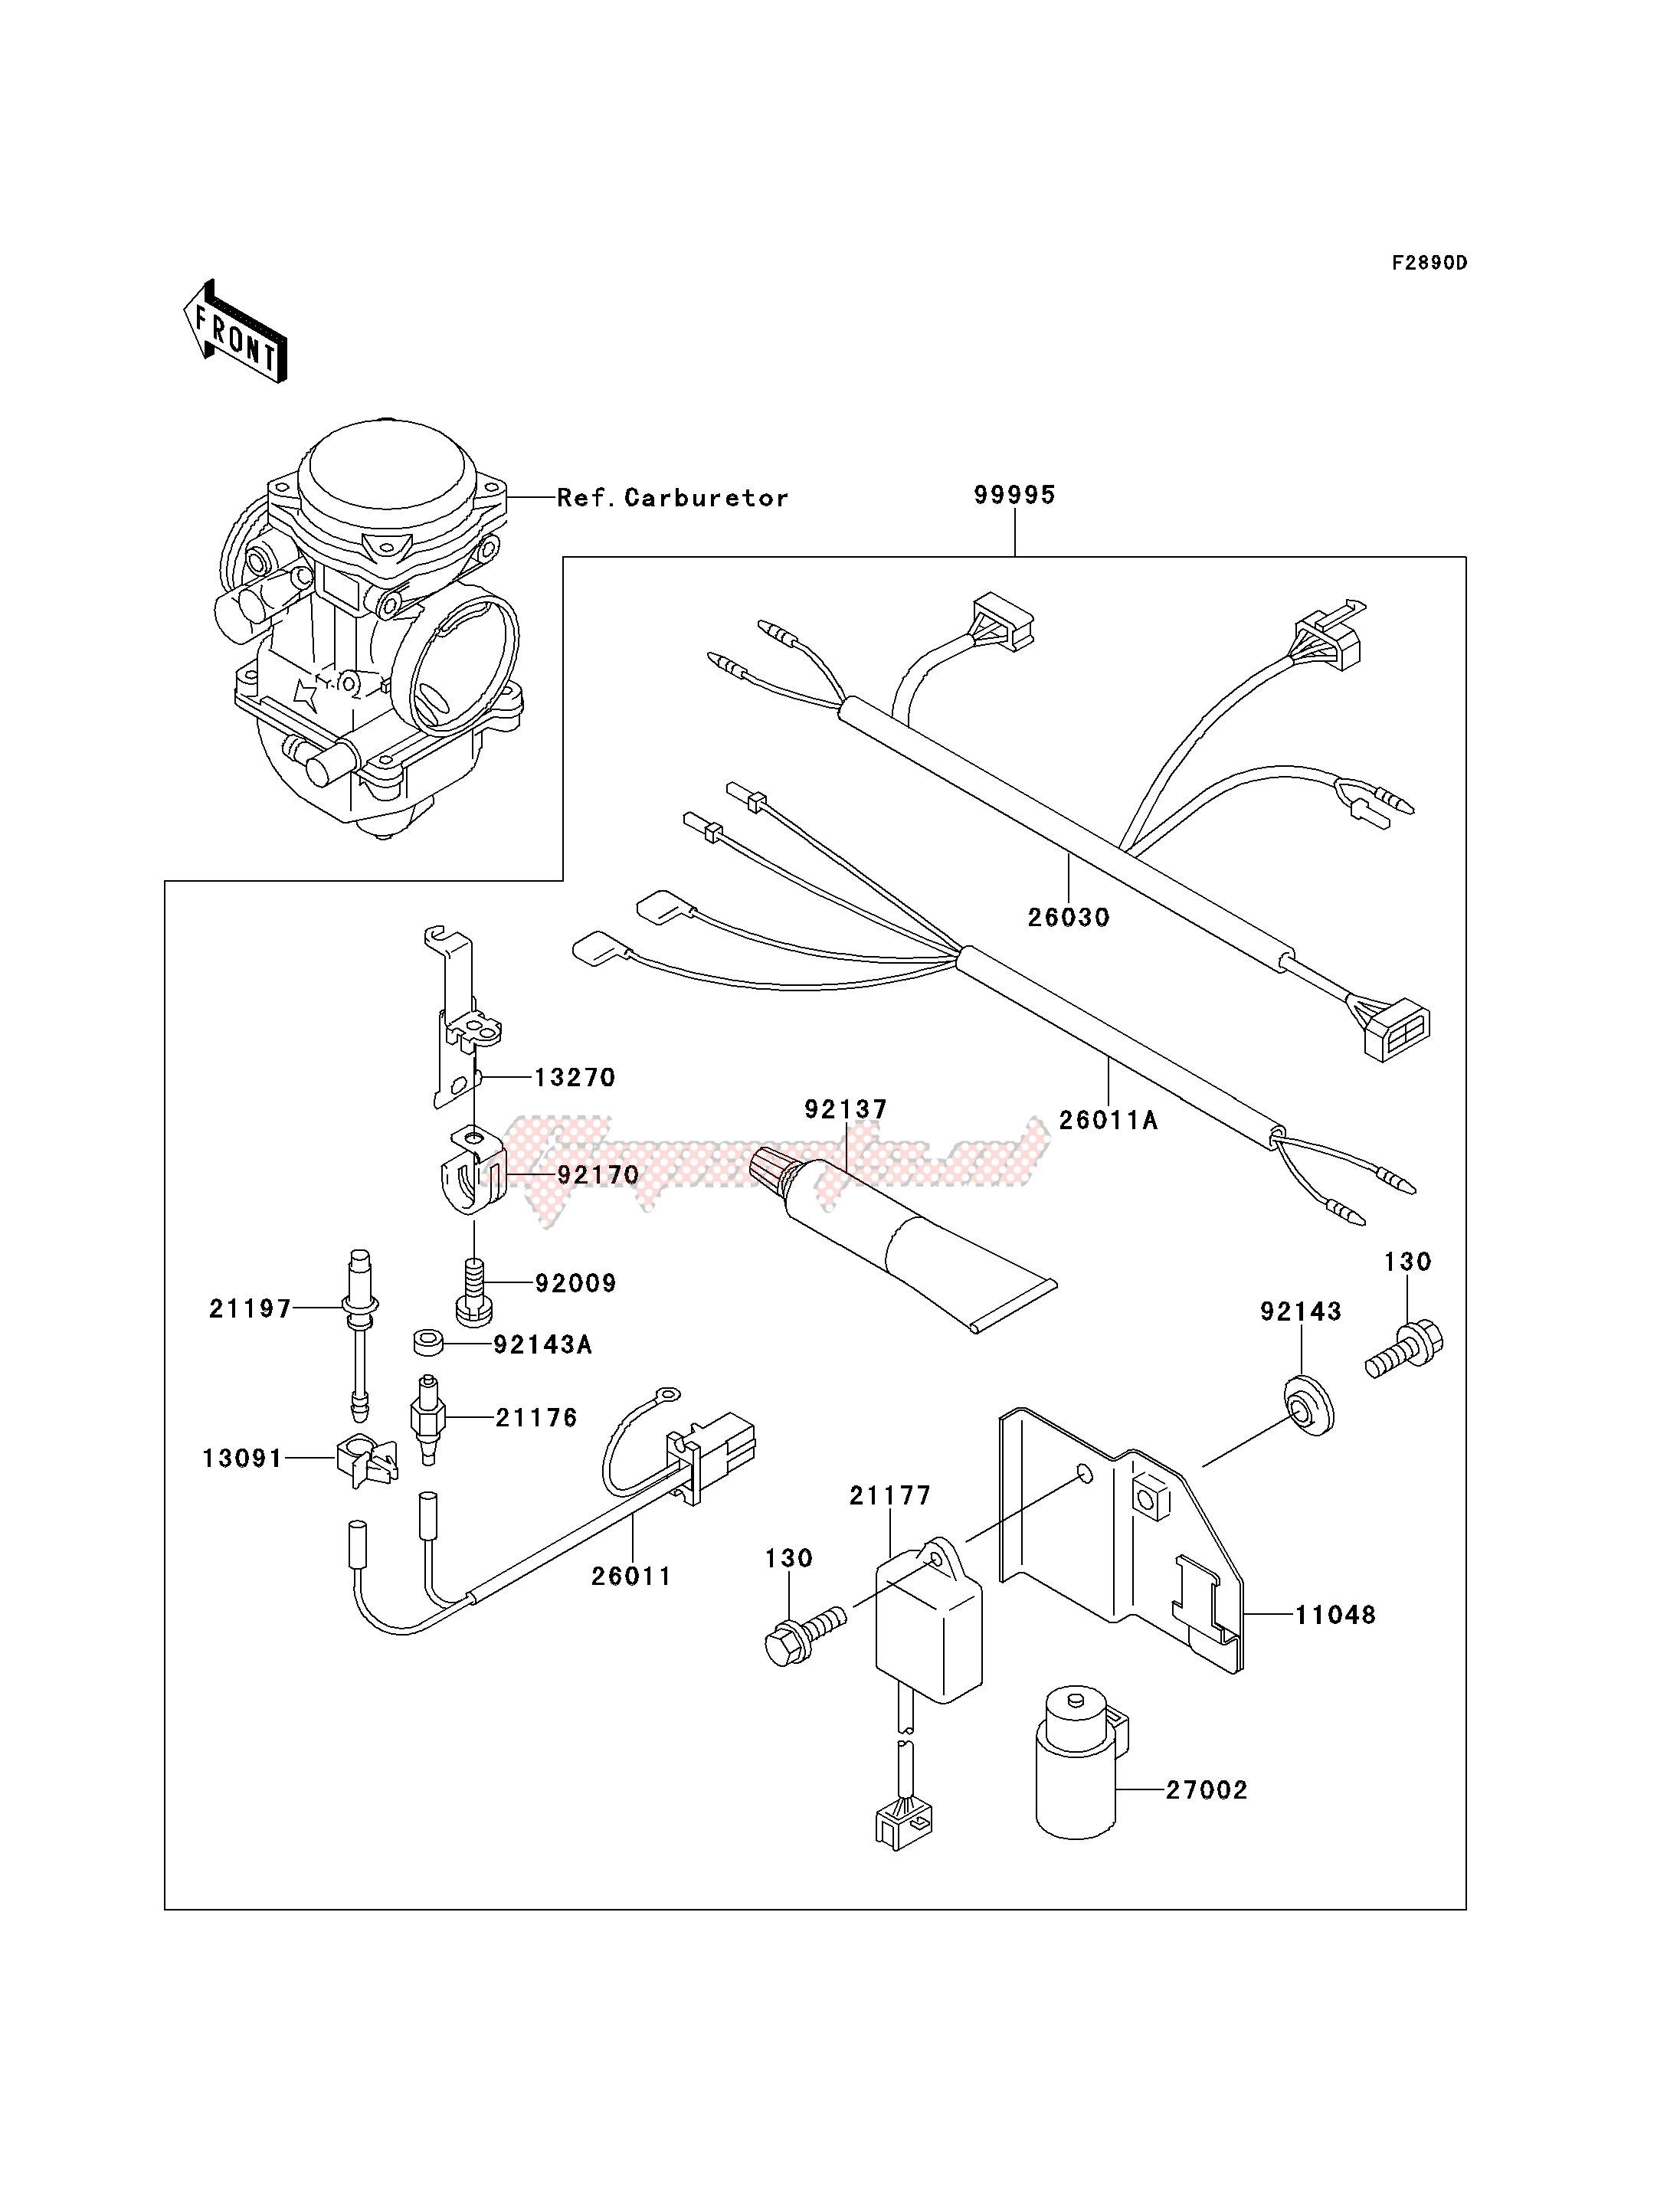 Accessories-OPTIONAL PARTS-- CARBRETOR- -